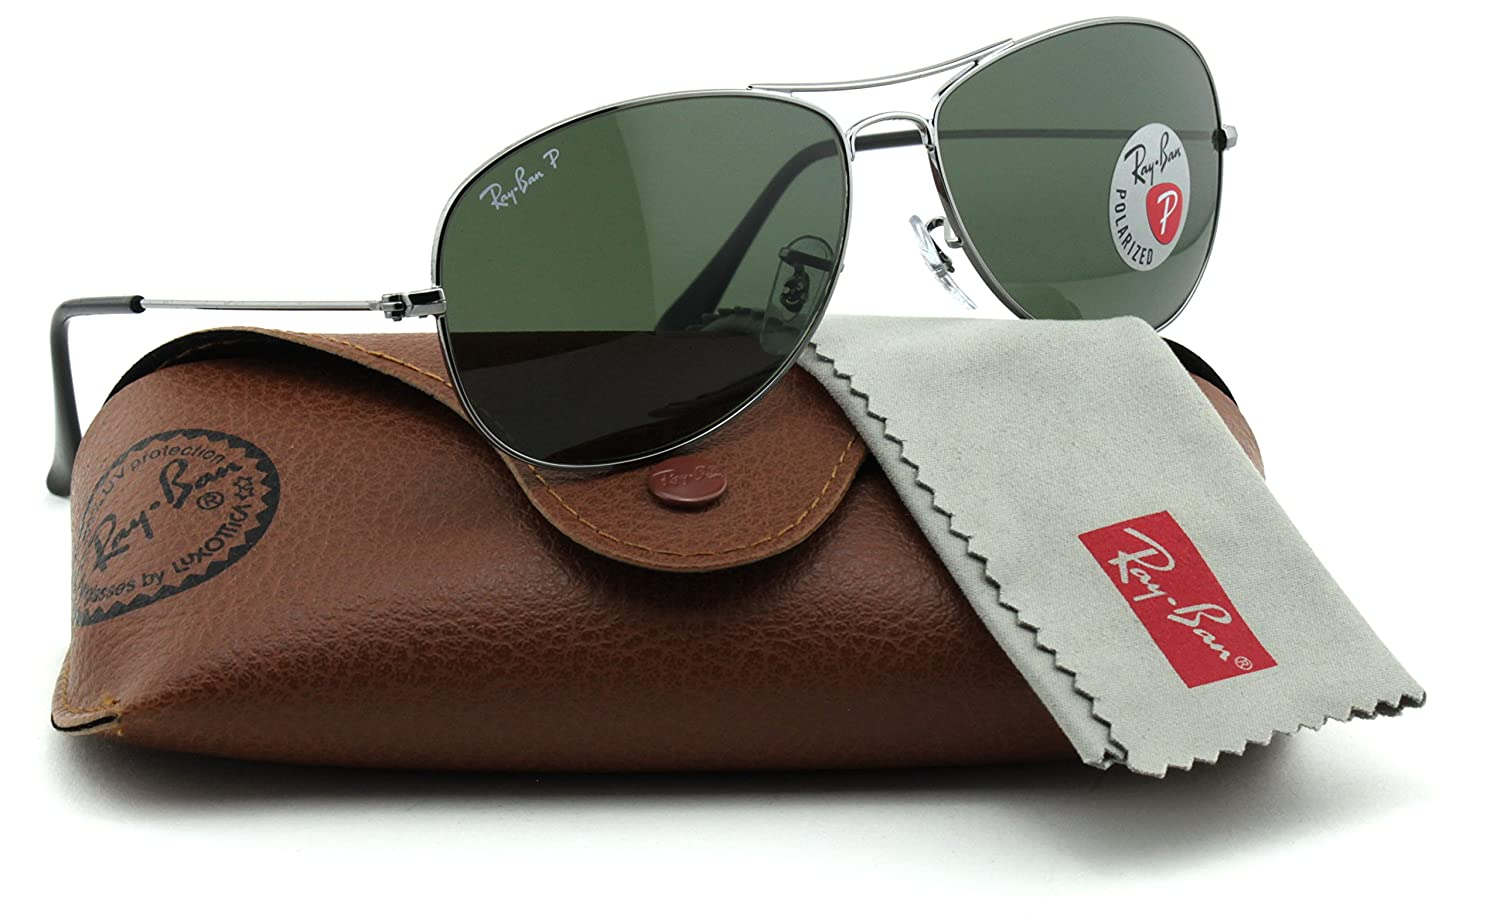 50adbe0c66 Ray-Ban RB3362 004 58 Cockpit Gunmetal Frame   Green Polarized Lens   Amazon.co.uk  Clothing